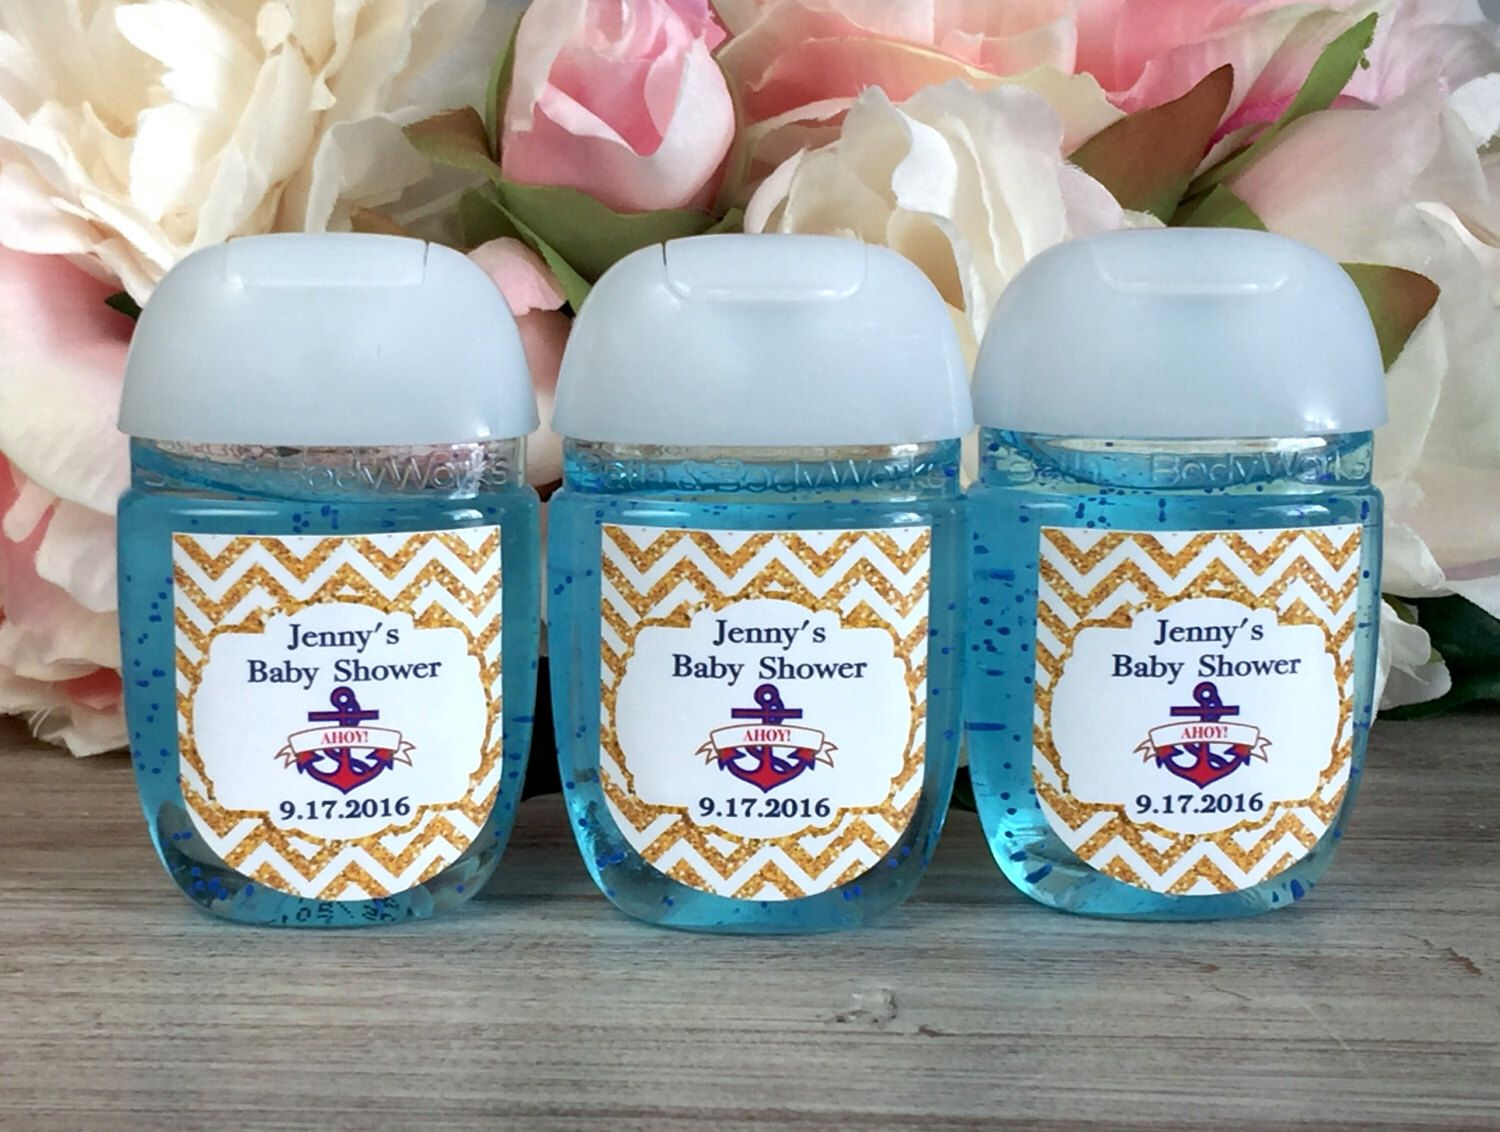 Ahoy its a boy baby shower favor label hand sanitizer label ahoy its a boy baby shower favor label hand sanitizer label nautical hand sanitizer negle Choice Image